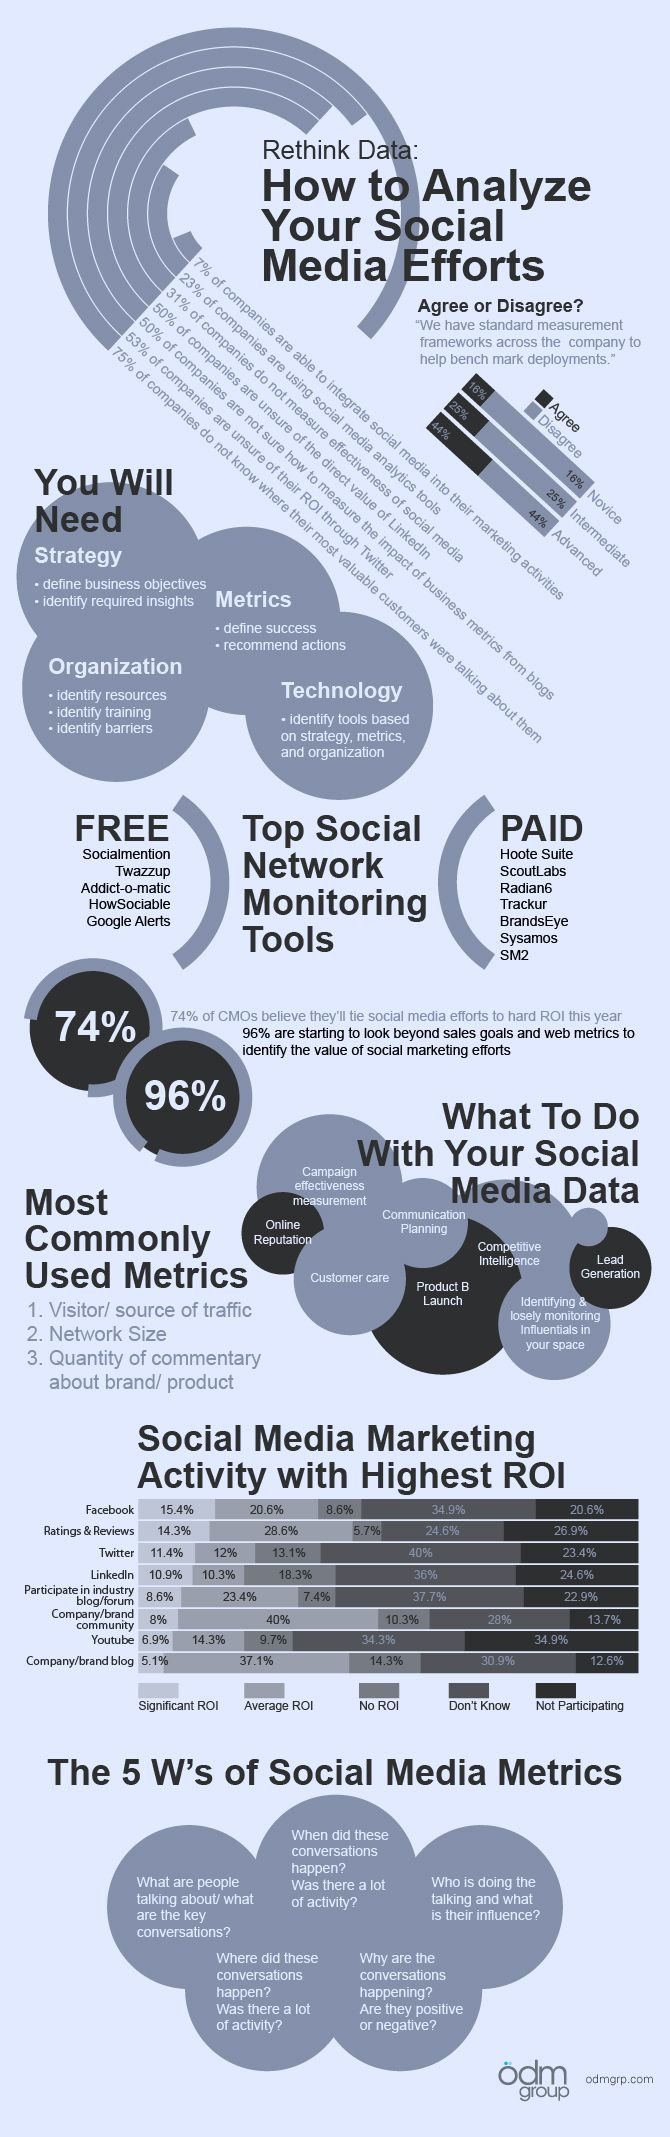 Rethink Data: How to Analyze Your Social Media Efforts